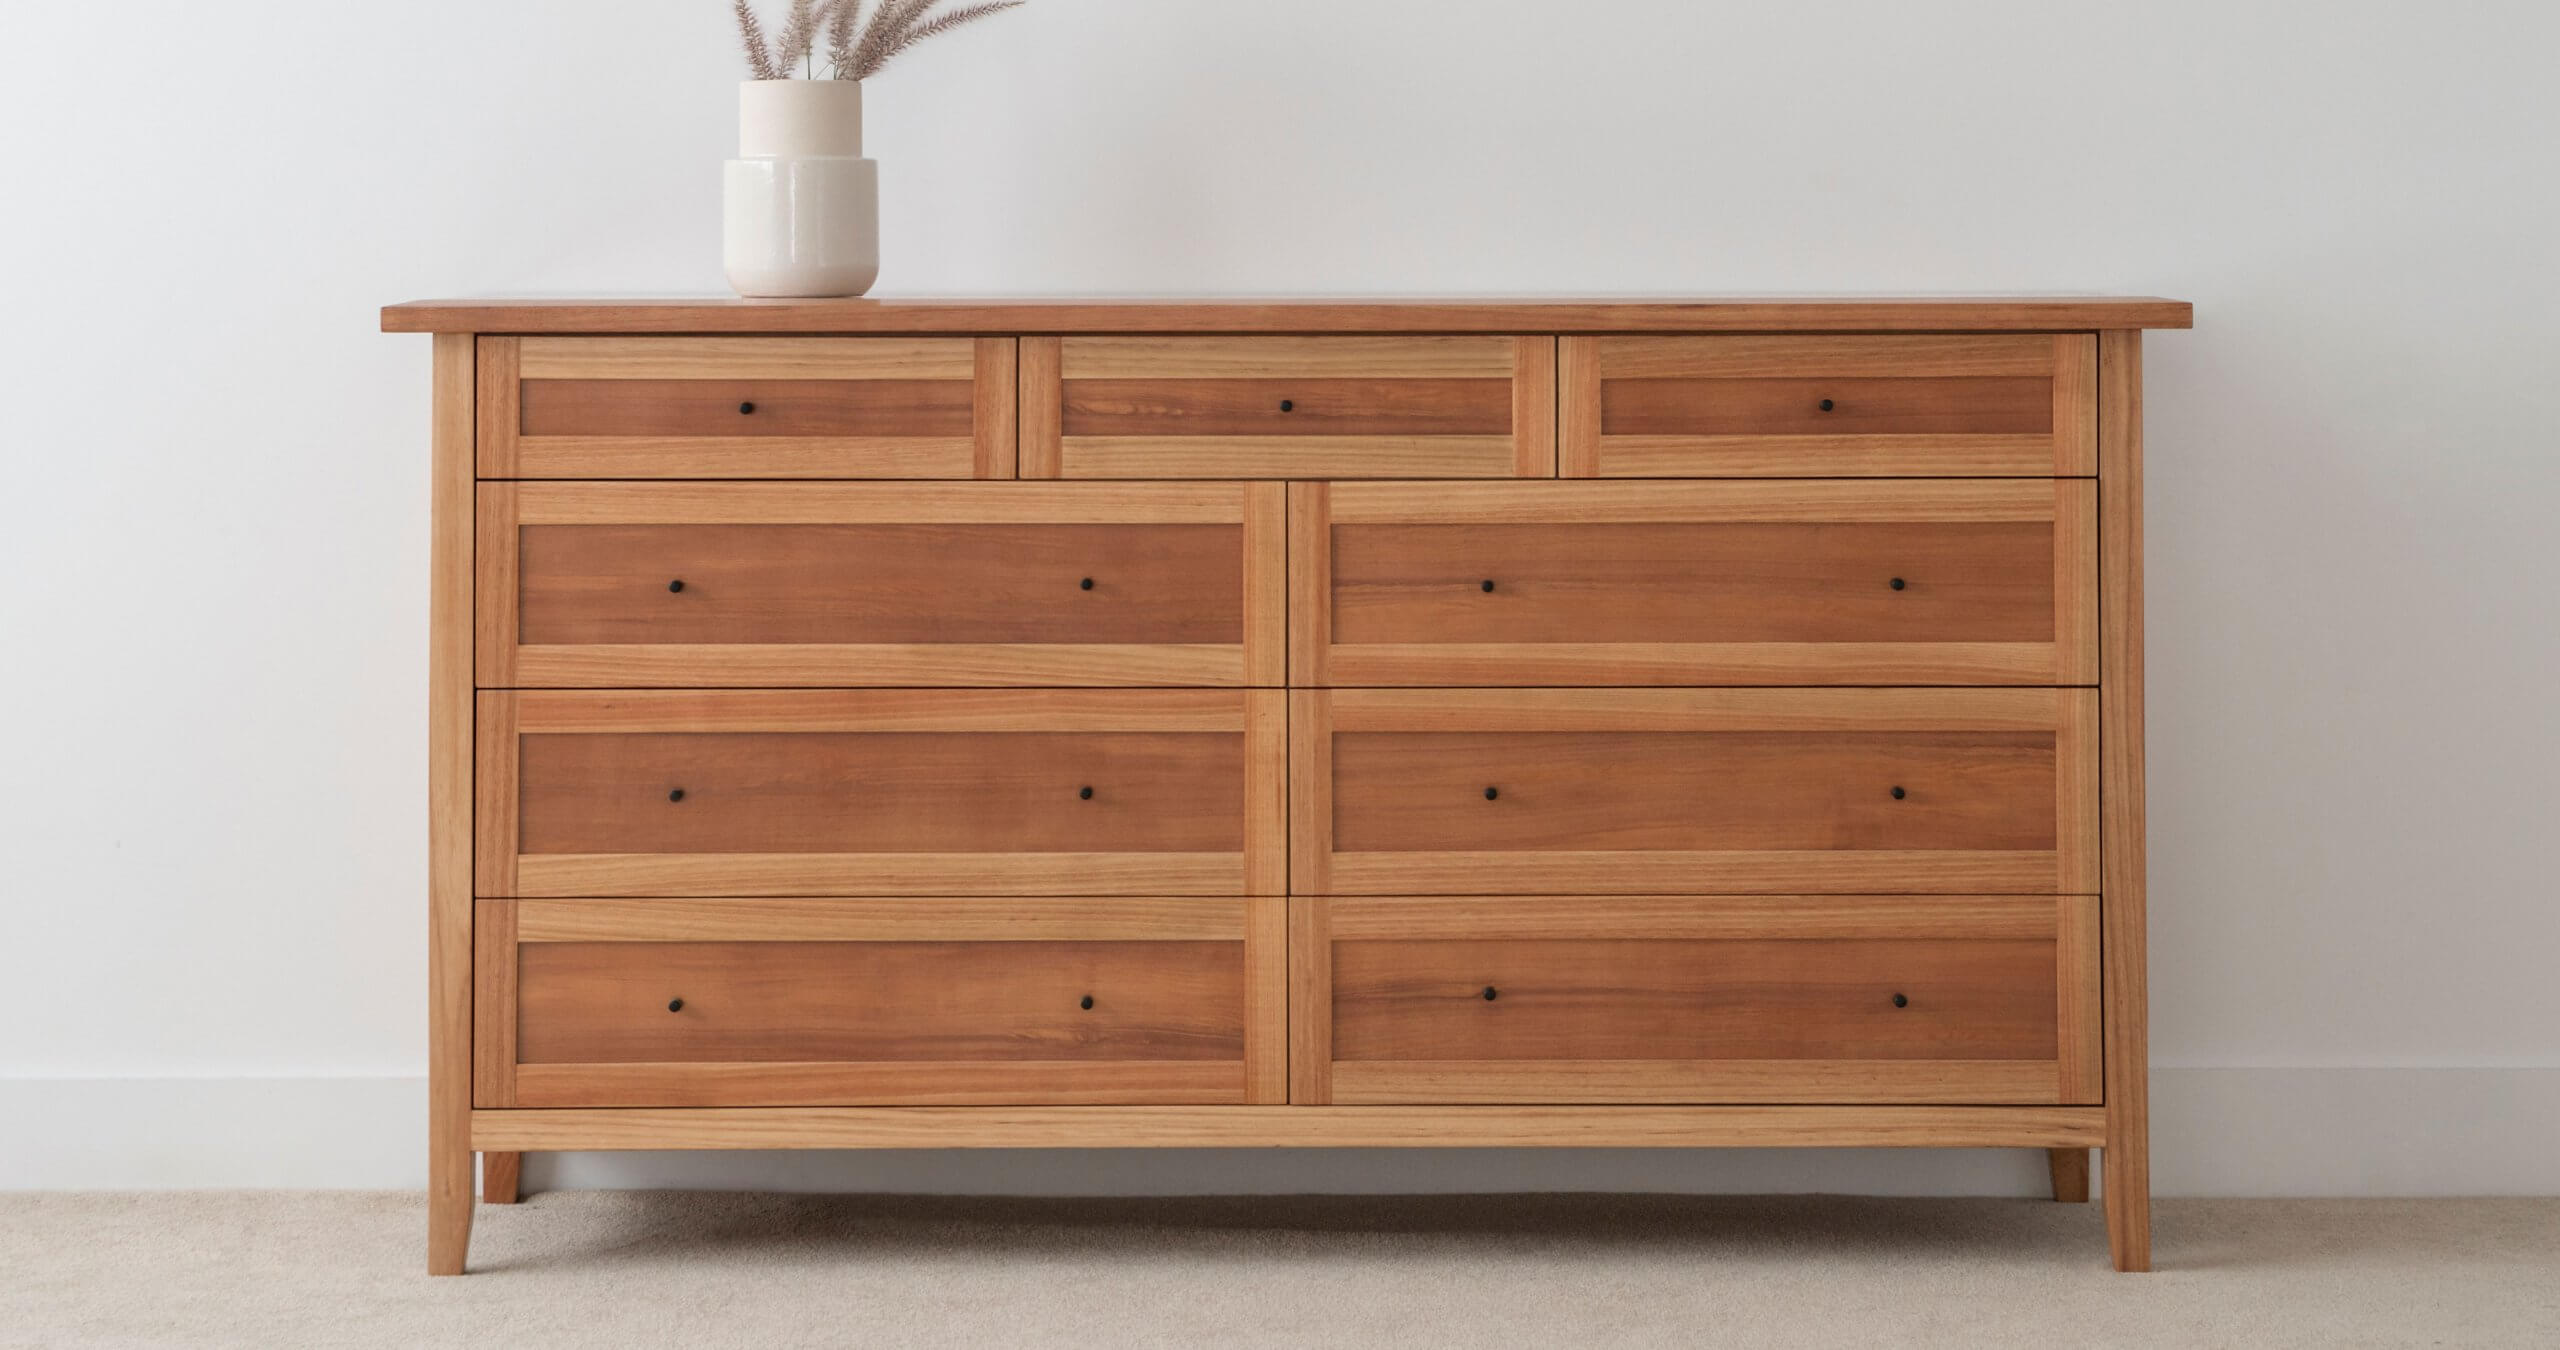 custom chest of drawers with overhang top and two tone timber